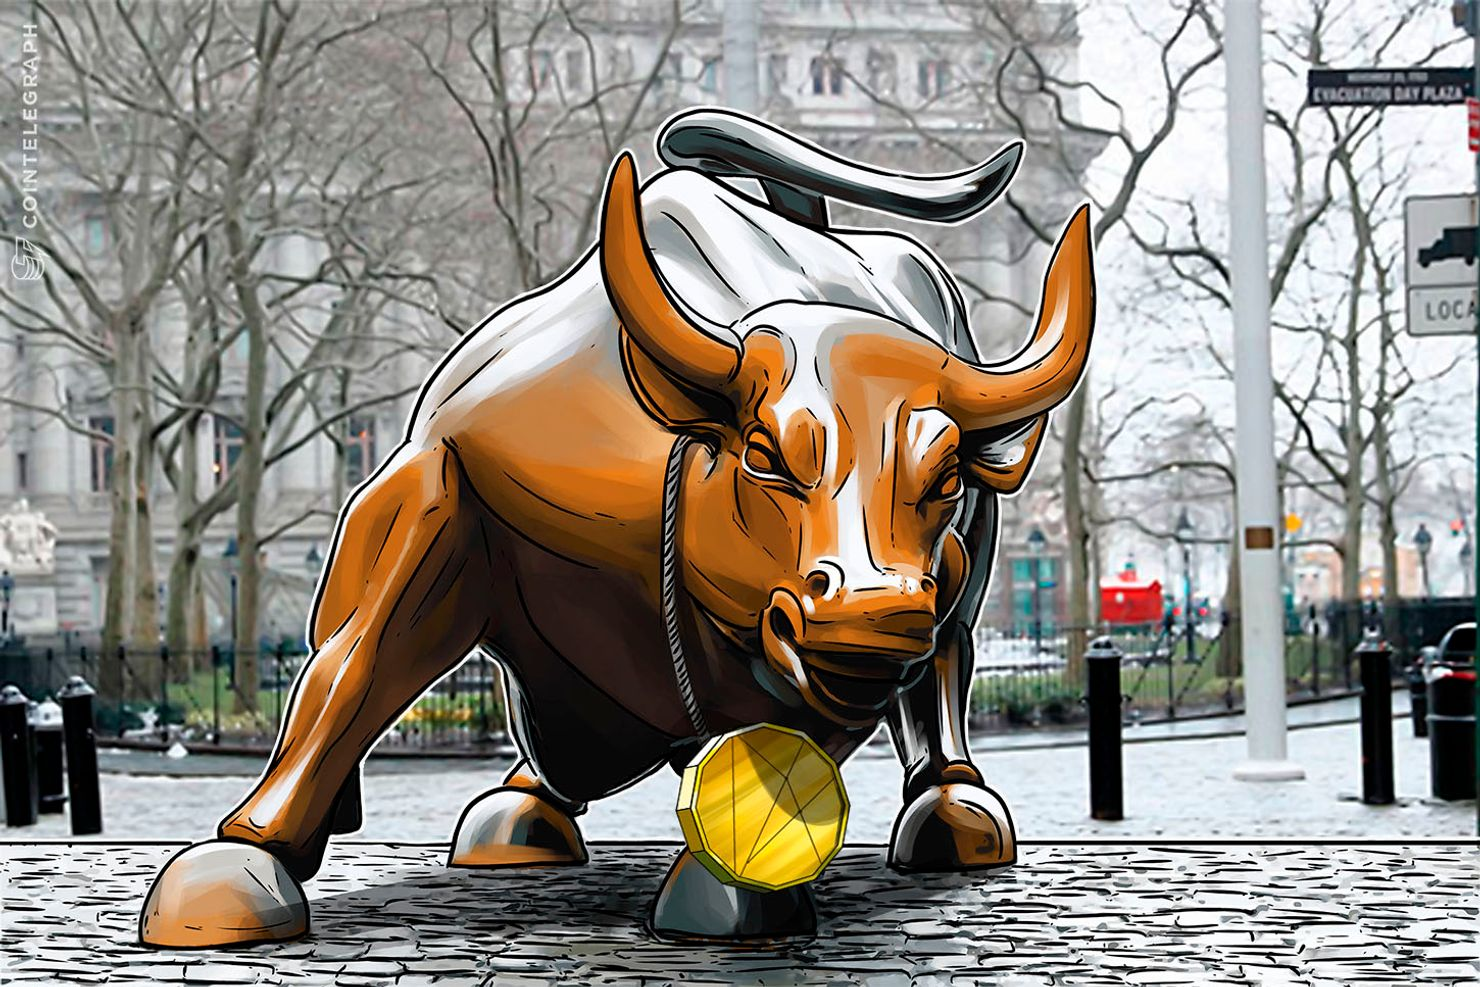 Bloomberg: Wall Street Giants Postpone Entering Crypto Industry Amid